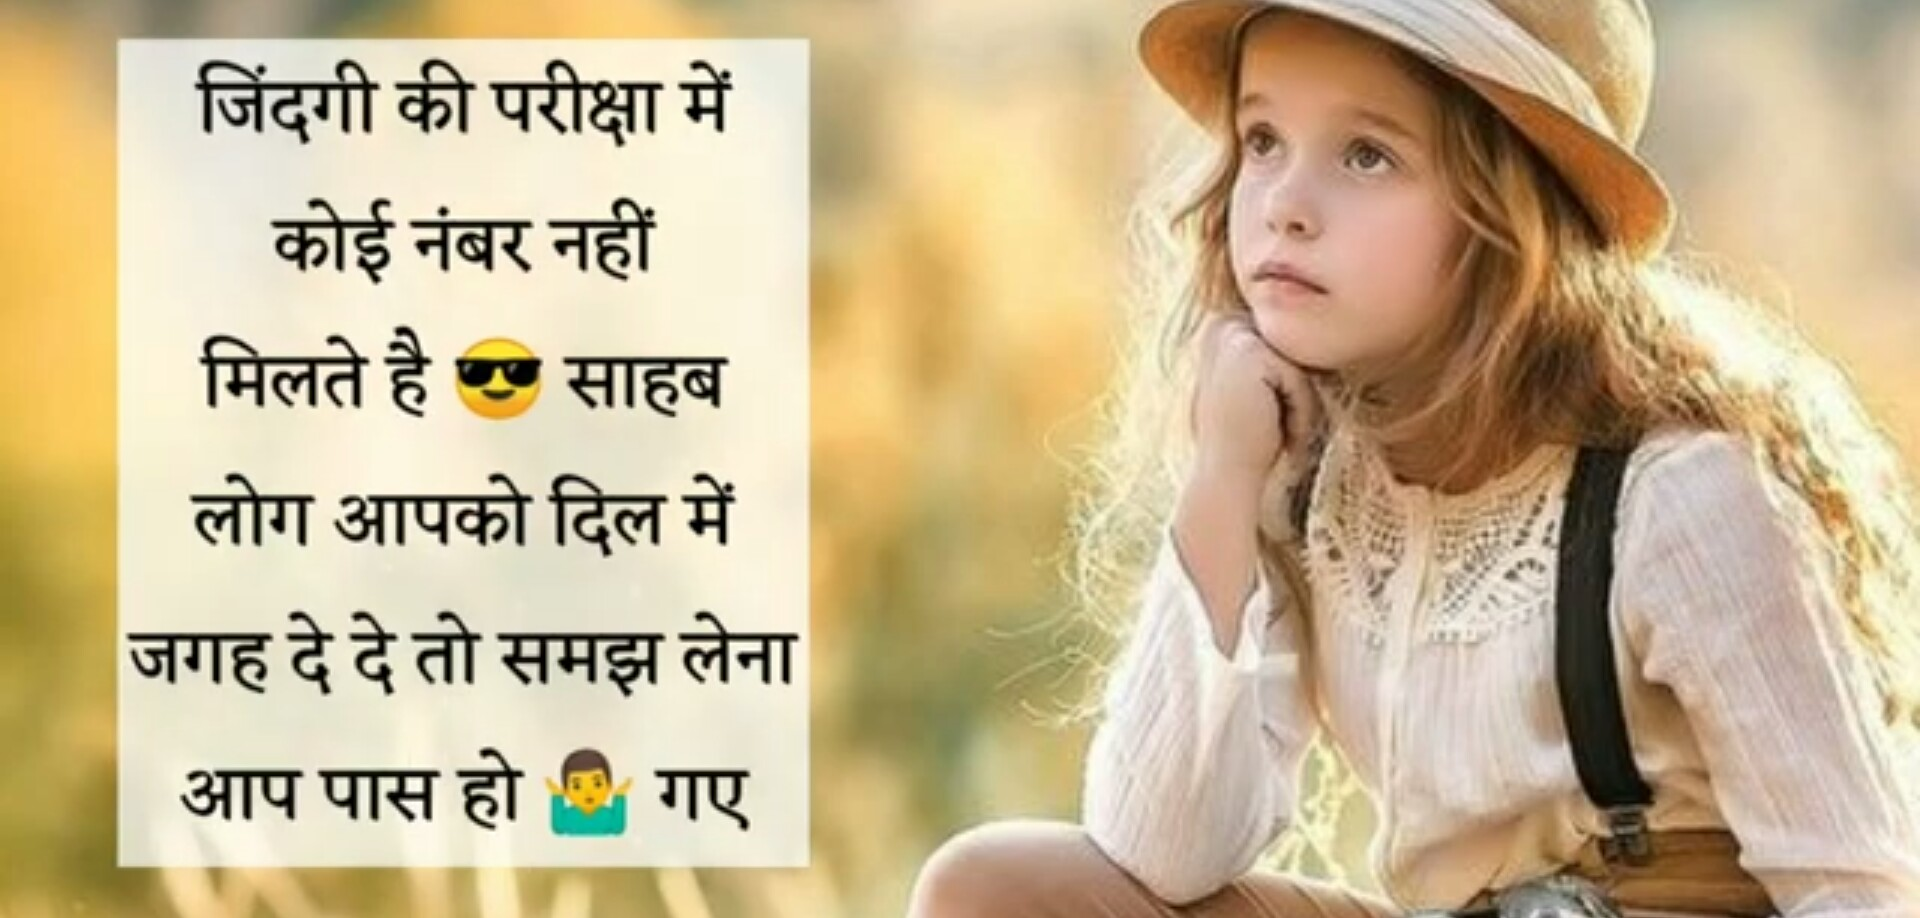 5 Positive Quotes About Life in Hindi | Short positive quotes